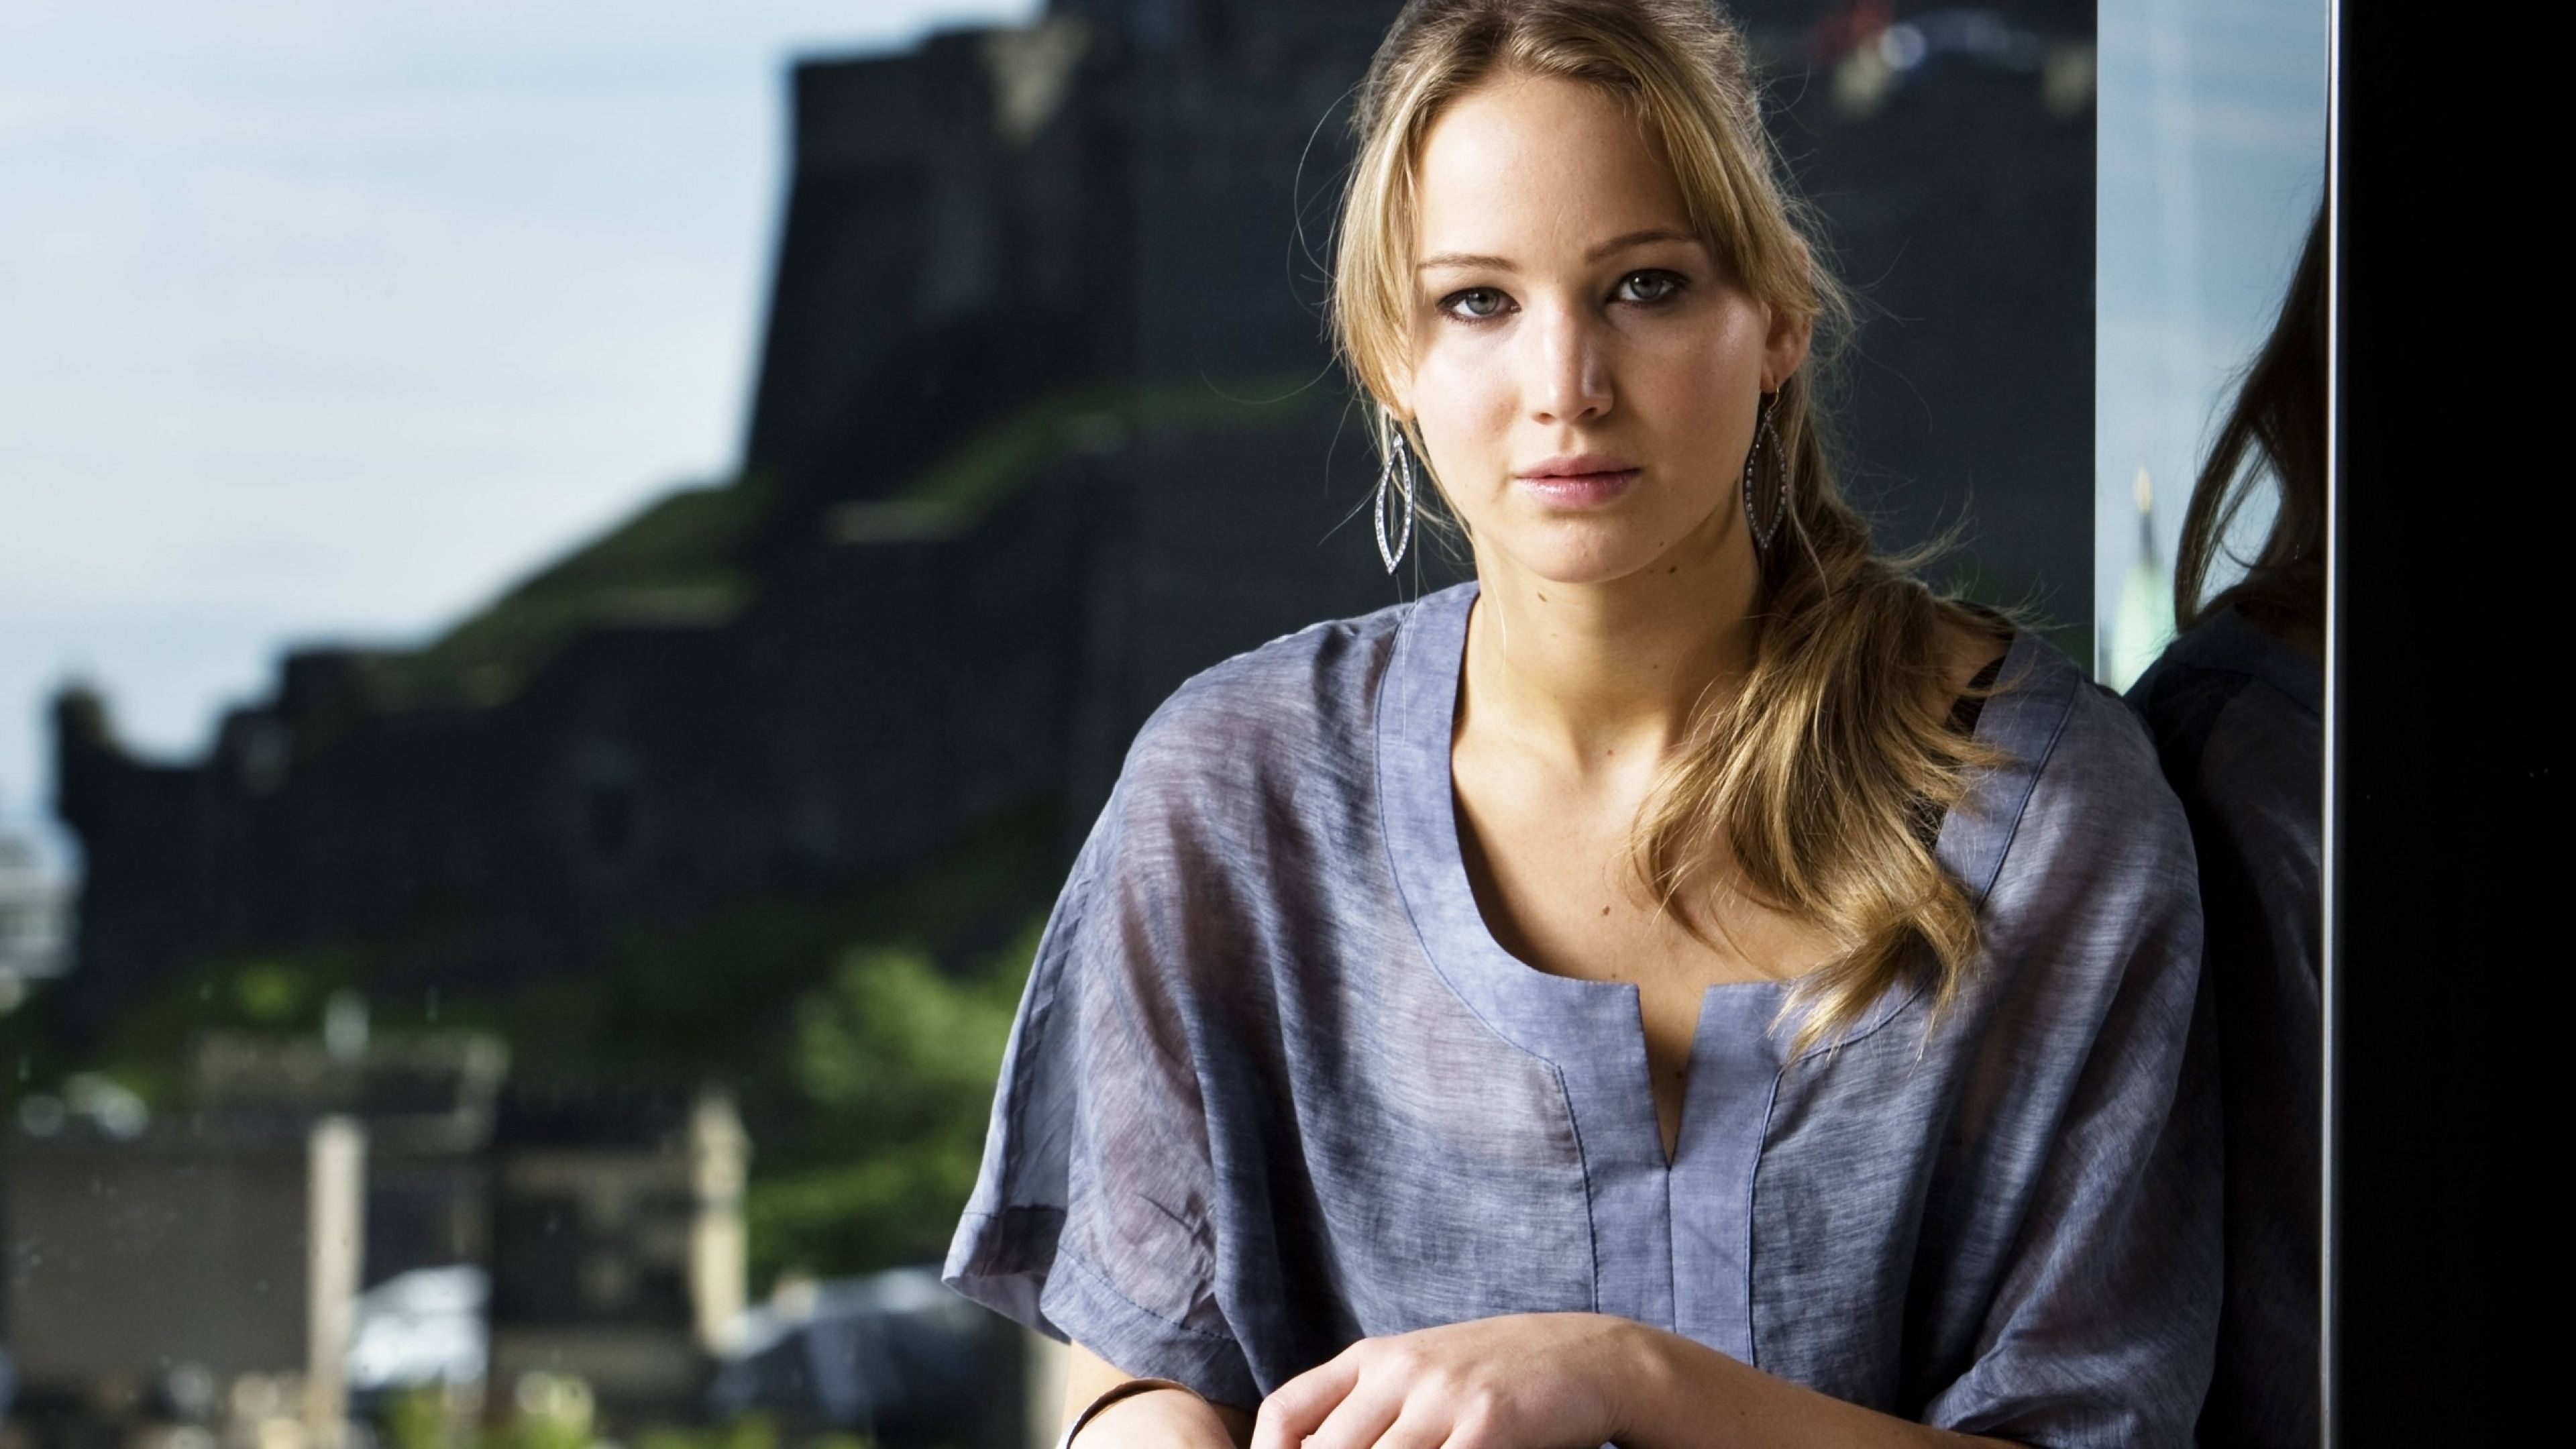 Jennifer lawrence wallpapers page hd wallpapers hd wallpapers jennifer lawrence wallpapers page hd wallpapers voltagebd Gallery